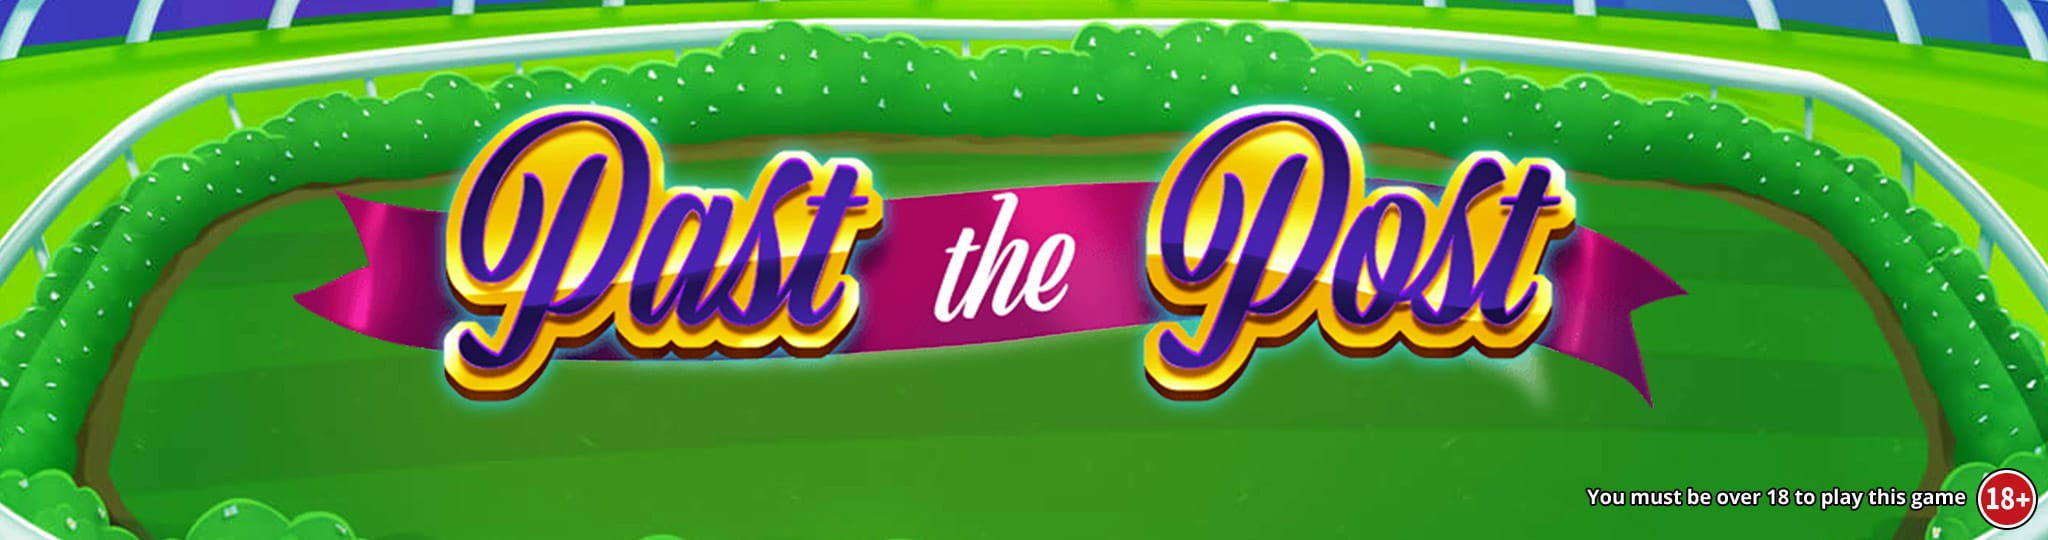 past the post jackpot slots game logo